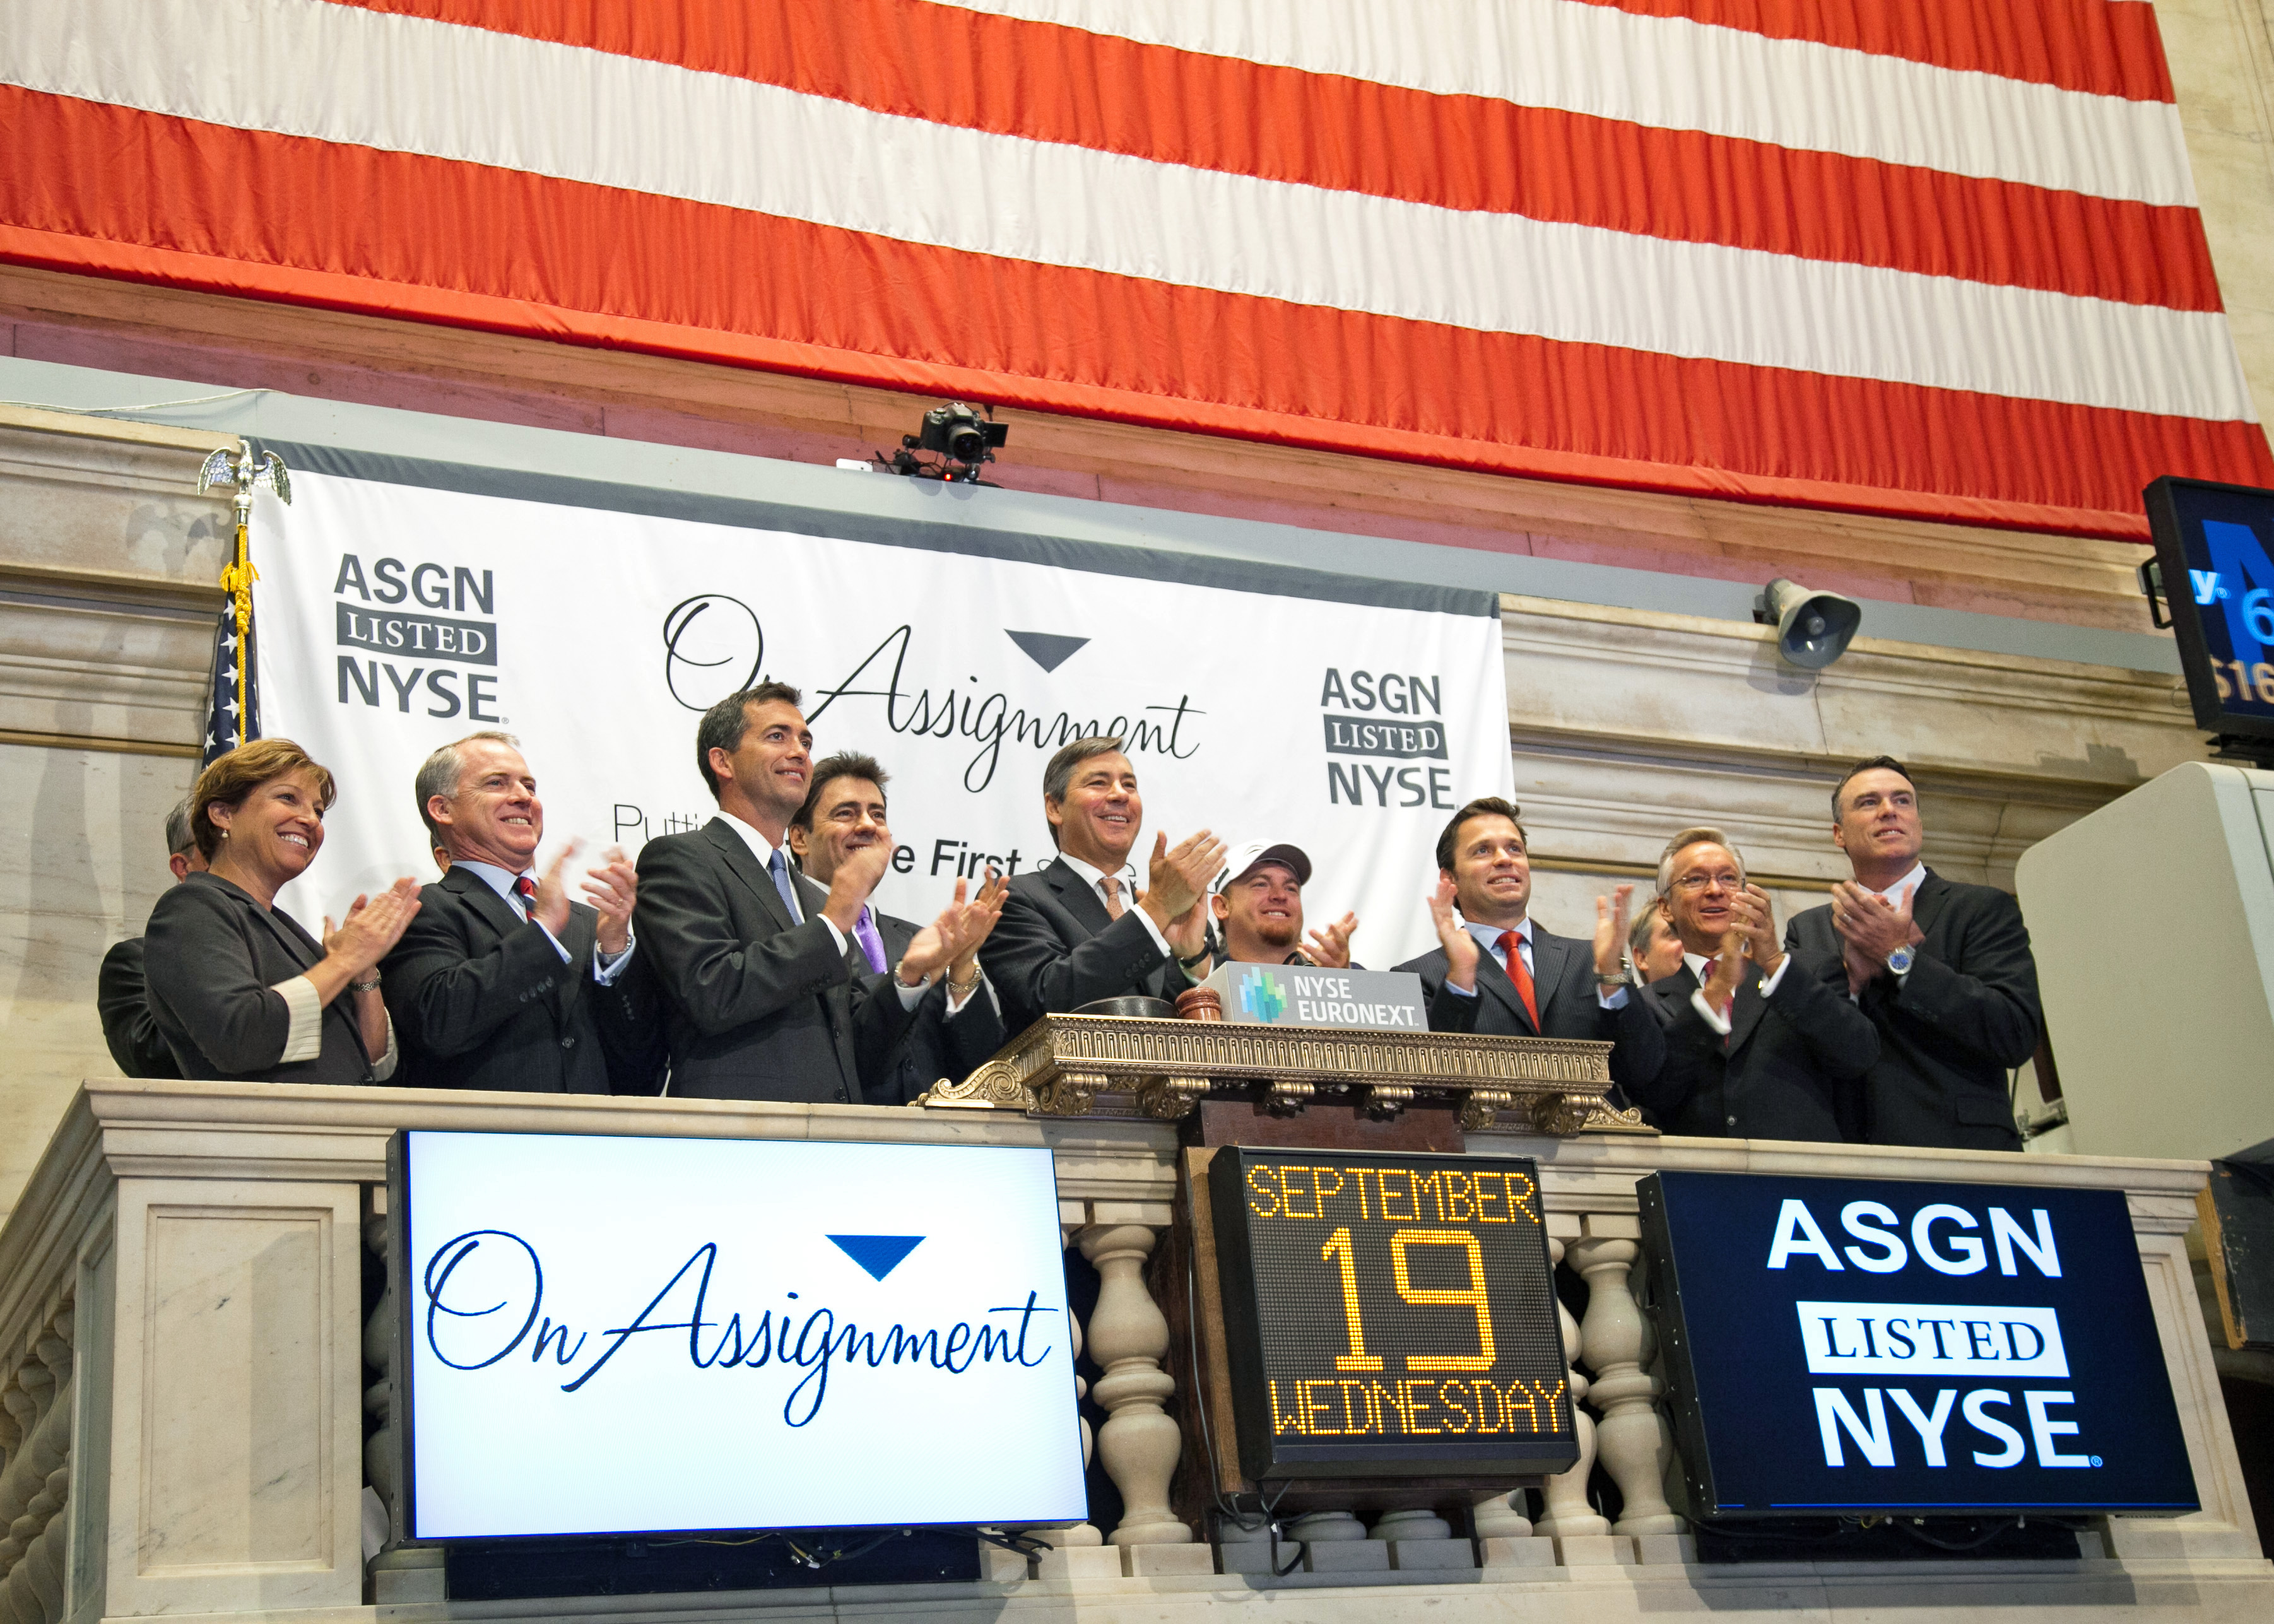 Jeff Veatch and others celebrate after ringing the opening bell at the New York Stock Exchange.